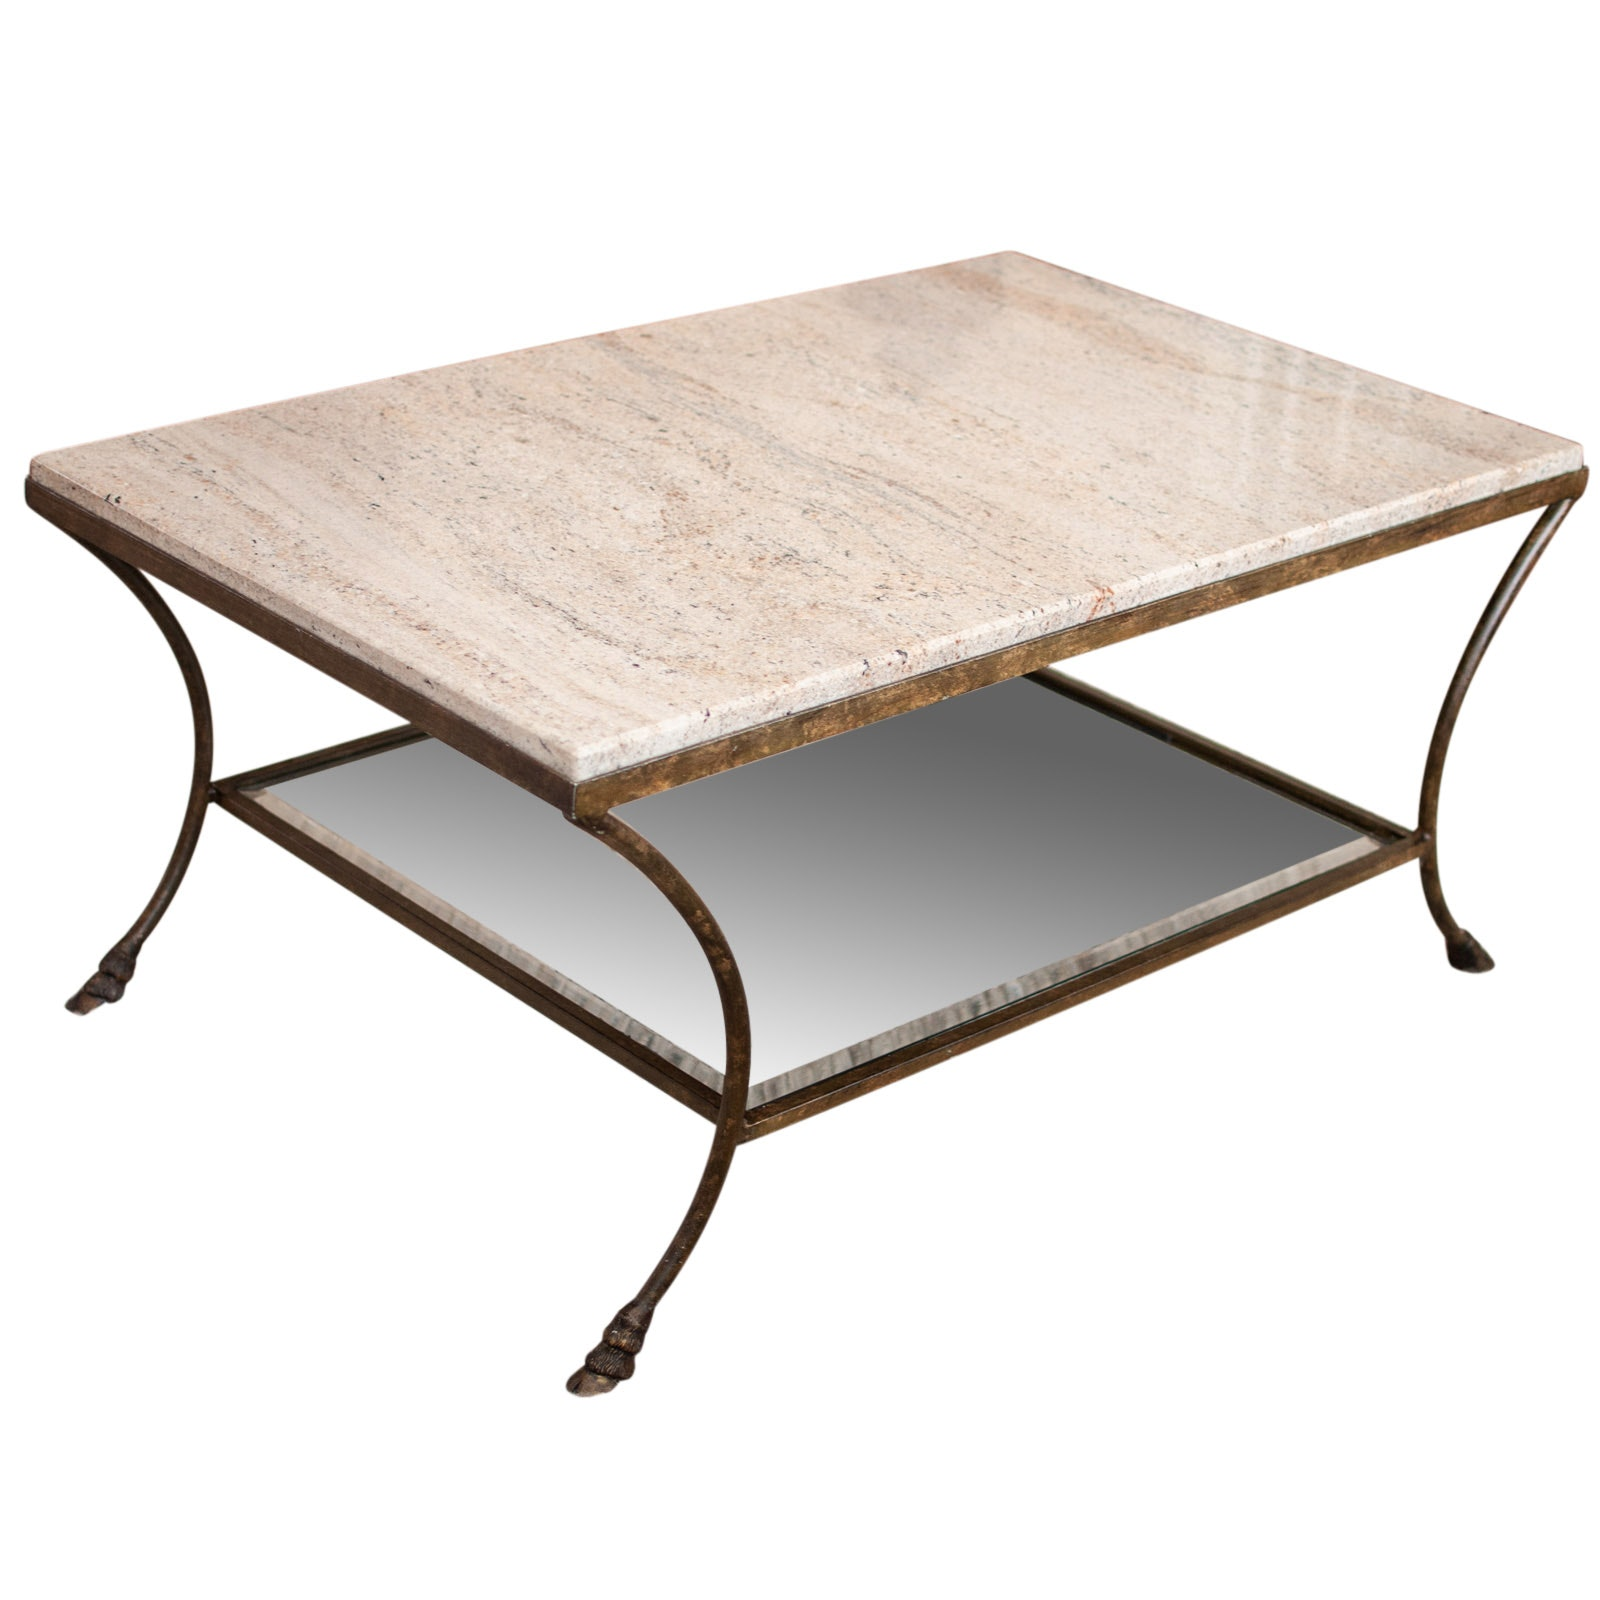 Contemporary Coffee Table with Marble Top and Beveled Glass Shelf by Henredon